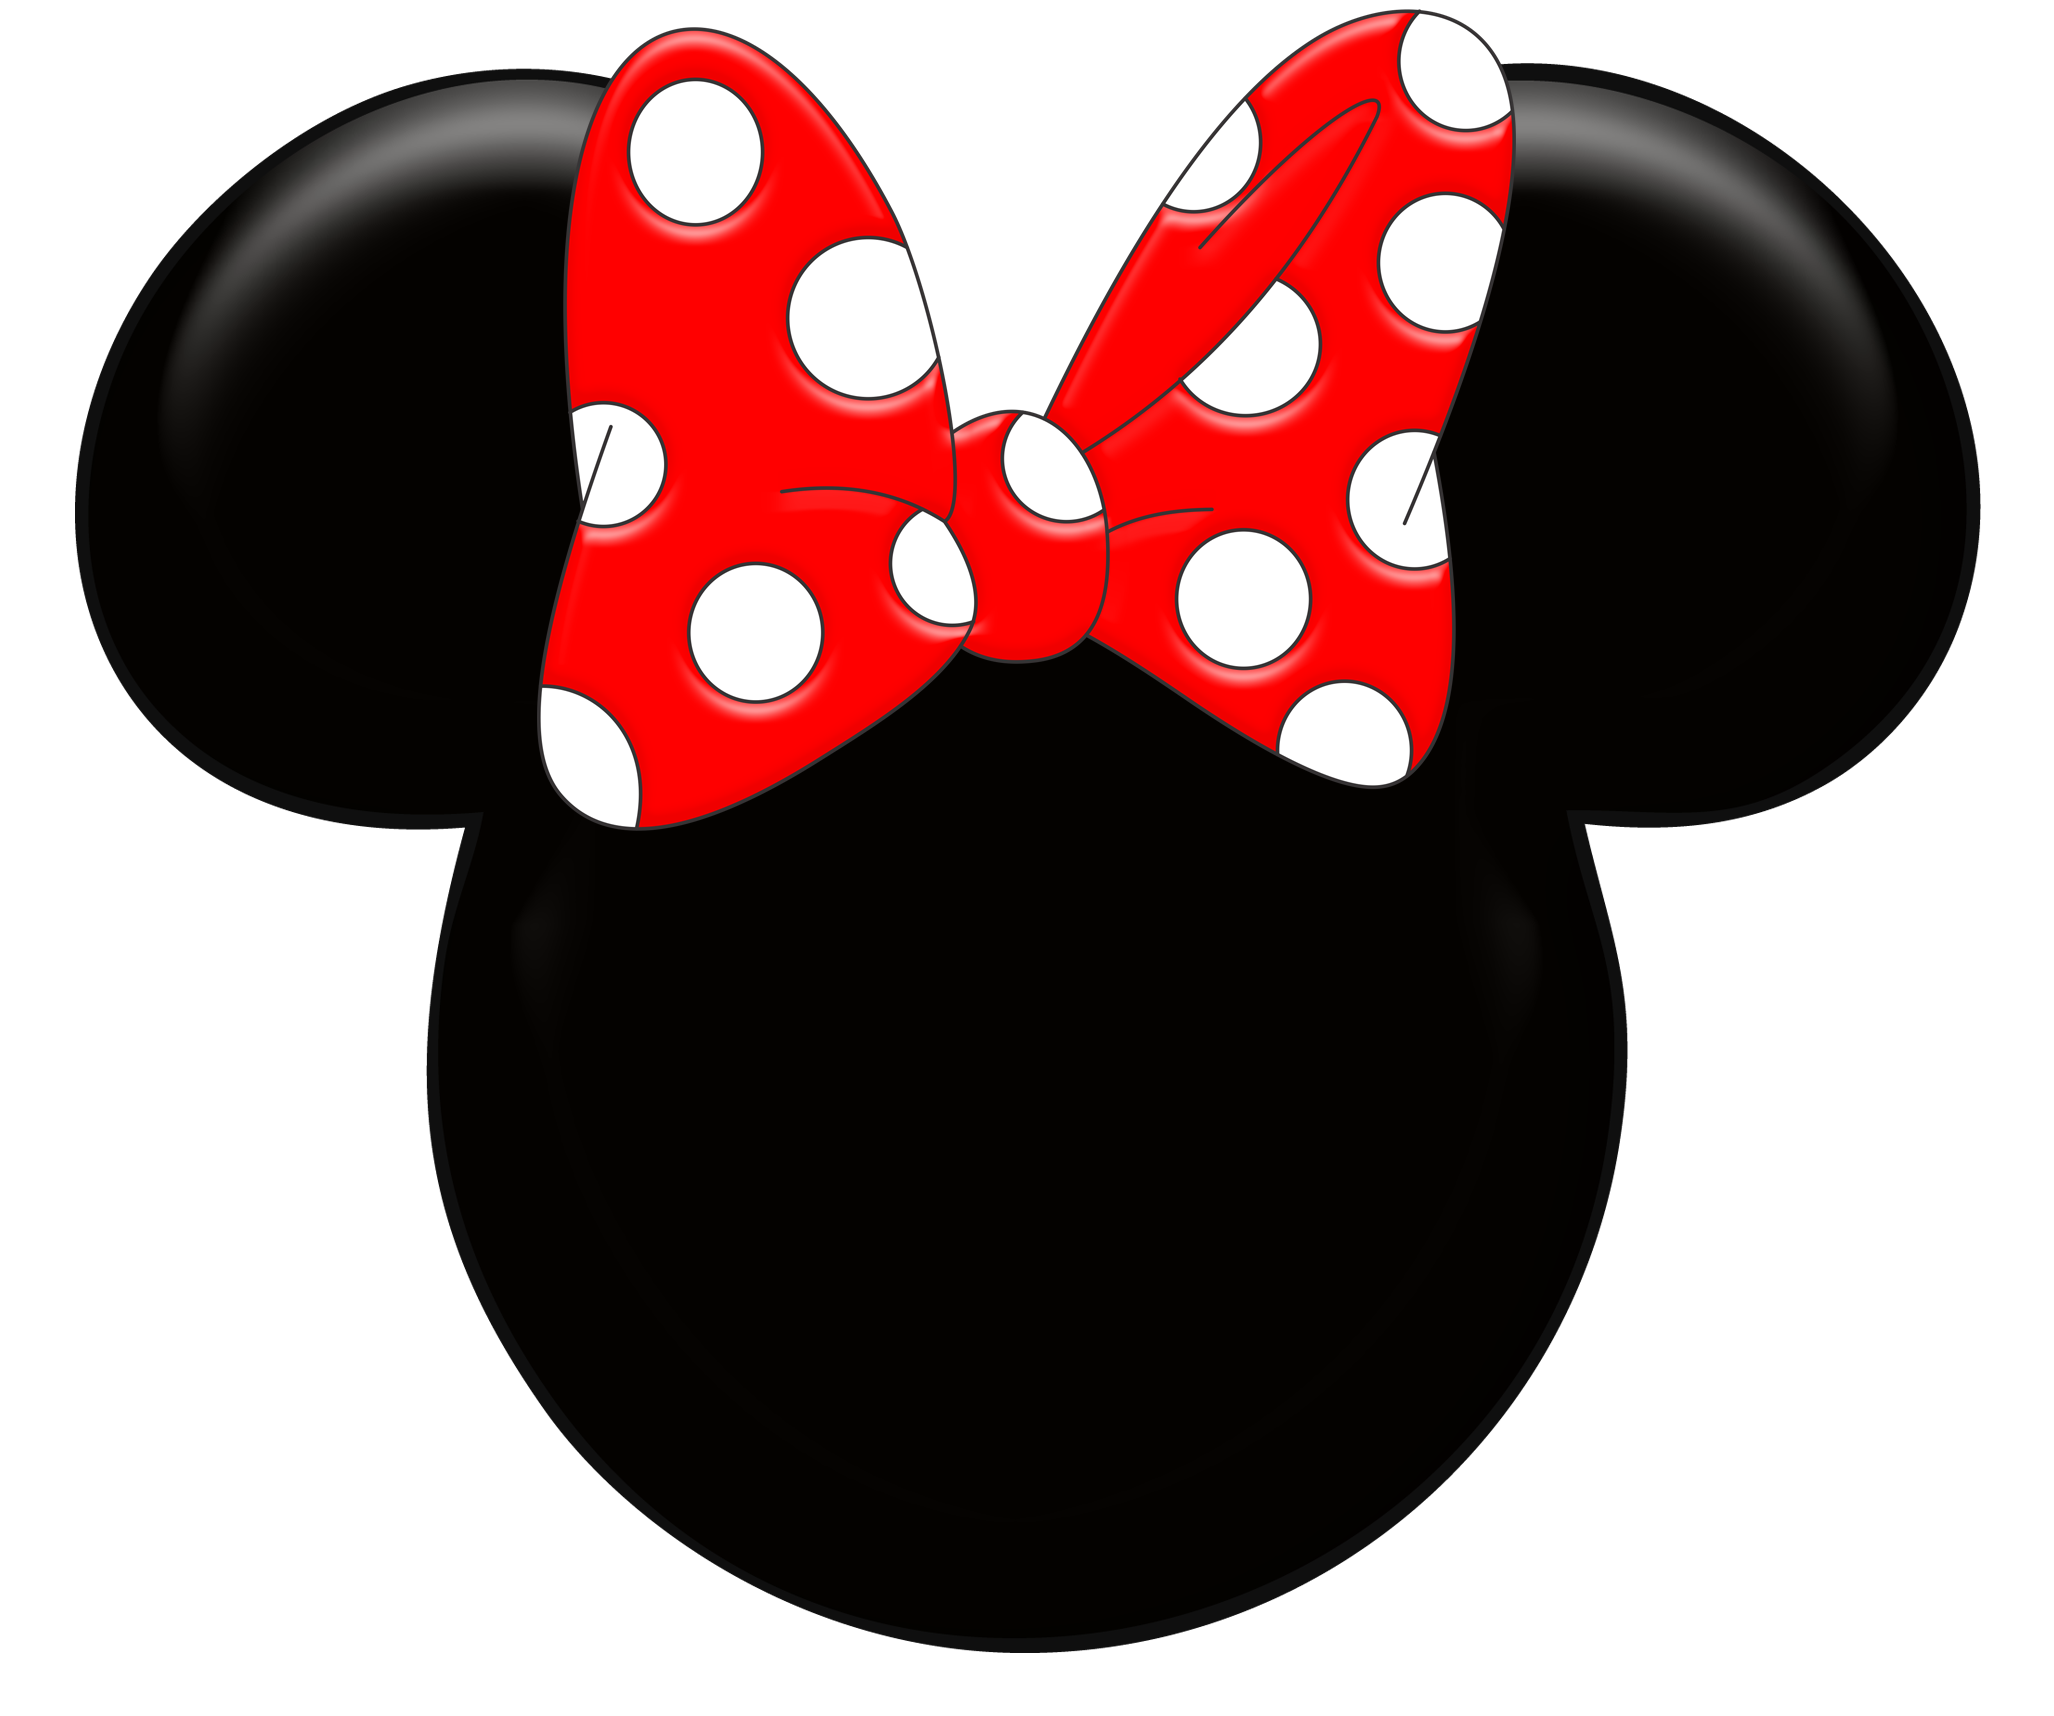 Red Minnie Mouse Wallpaper Kit Digital M-Red Minnie Mouse Wallpaper Kit Digital Minnie Mouse Png-6